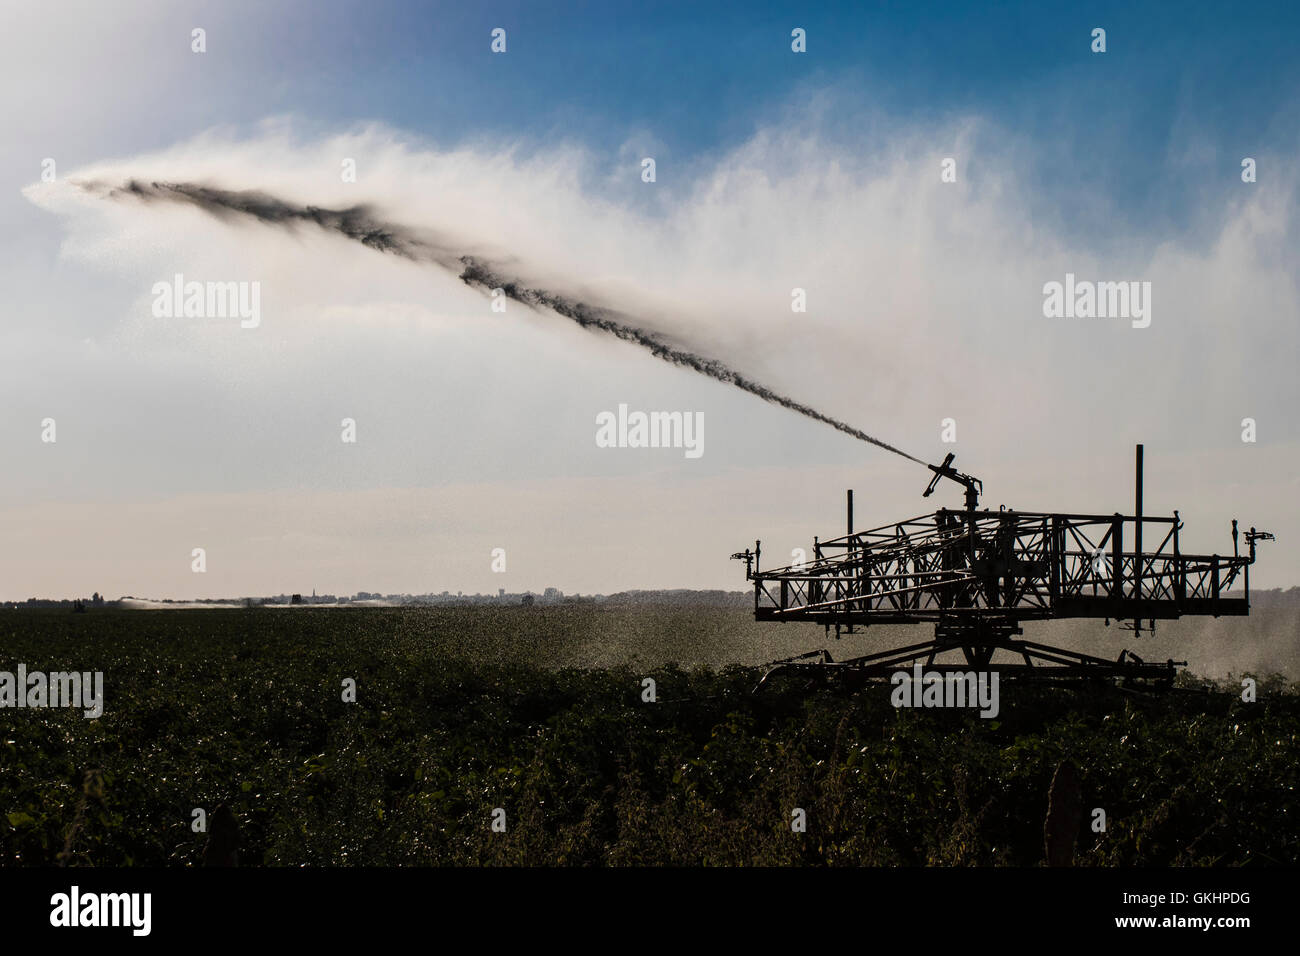 Irrigation of crops during hot weather, Cambridgeshire, England - Stock Image